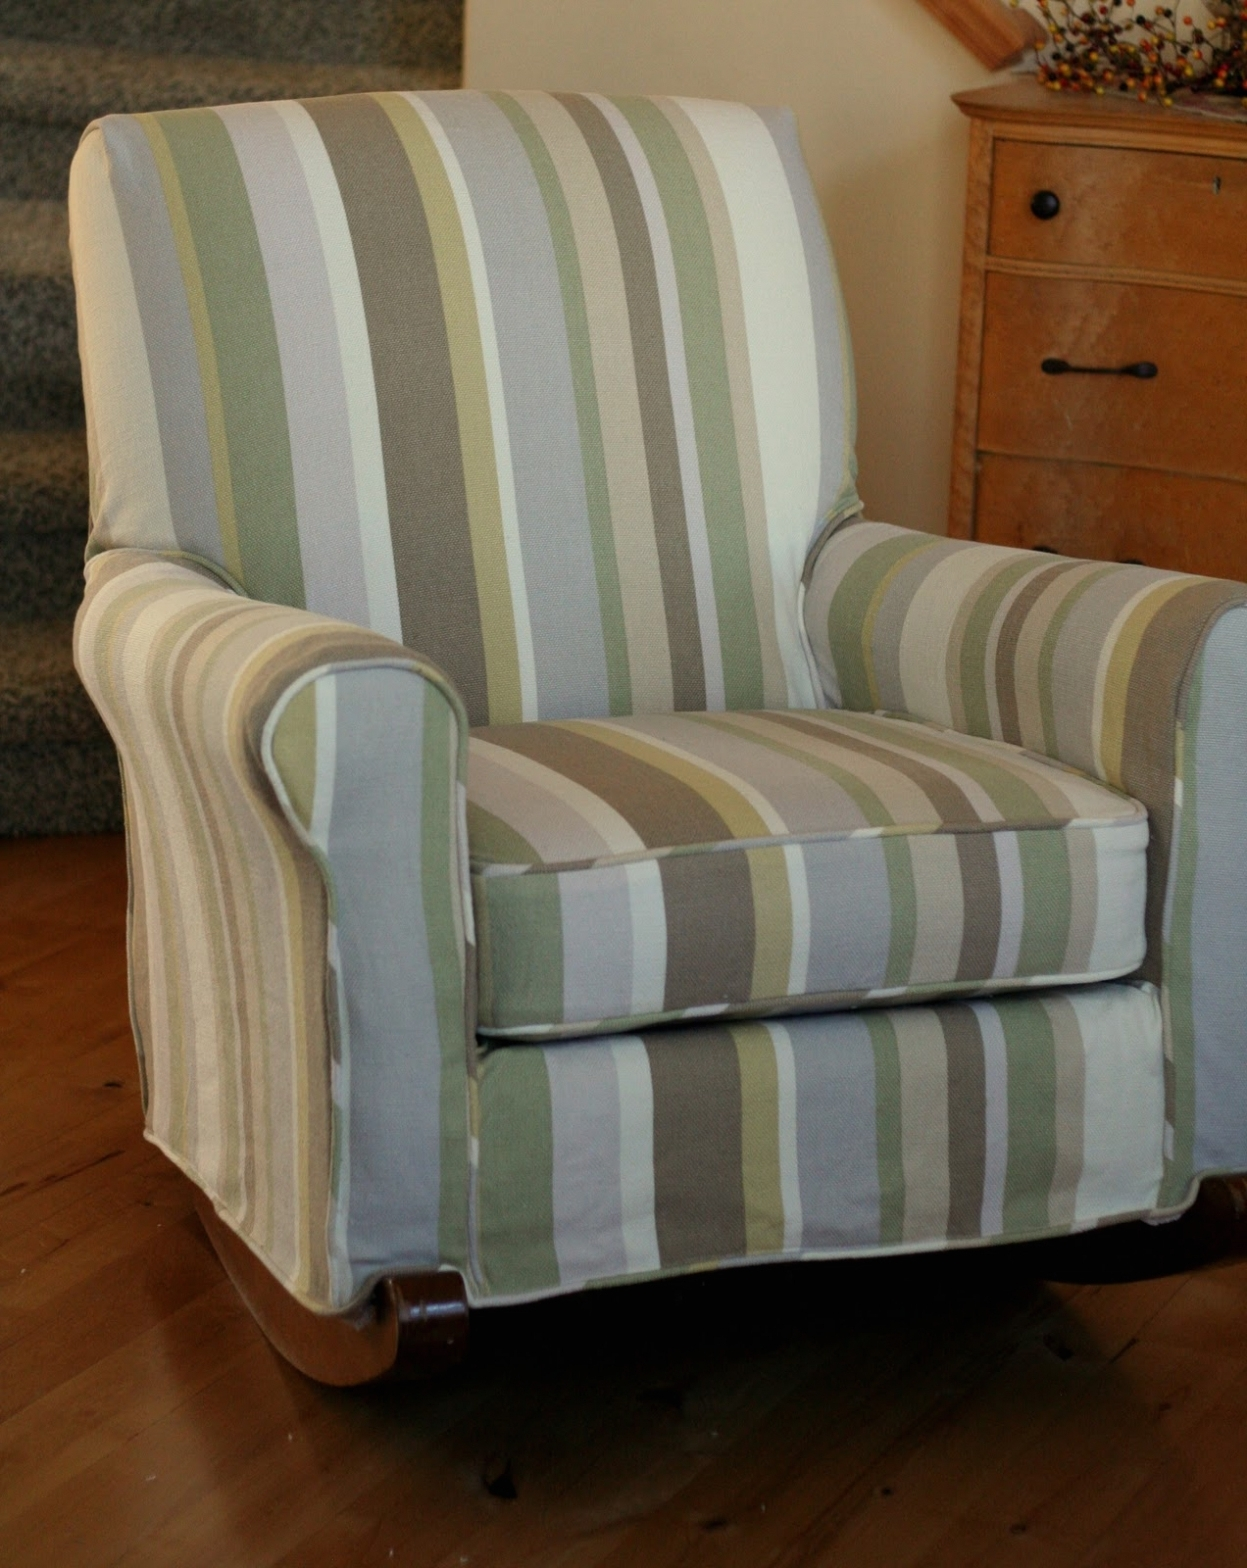 Well Known Table & Chair: Upholstered Rocking Chair Covers • Chair Covers Throughout Upholstered Rocking Chairs (View 7 of 20)